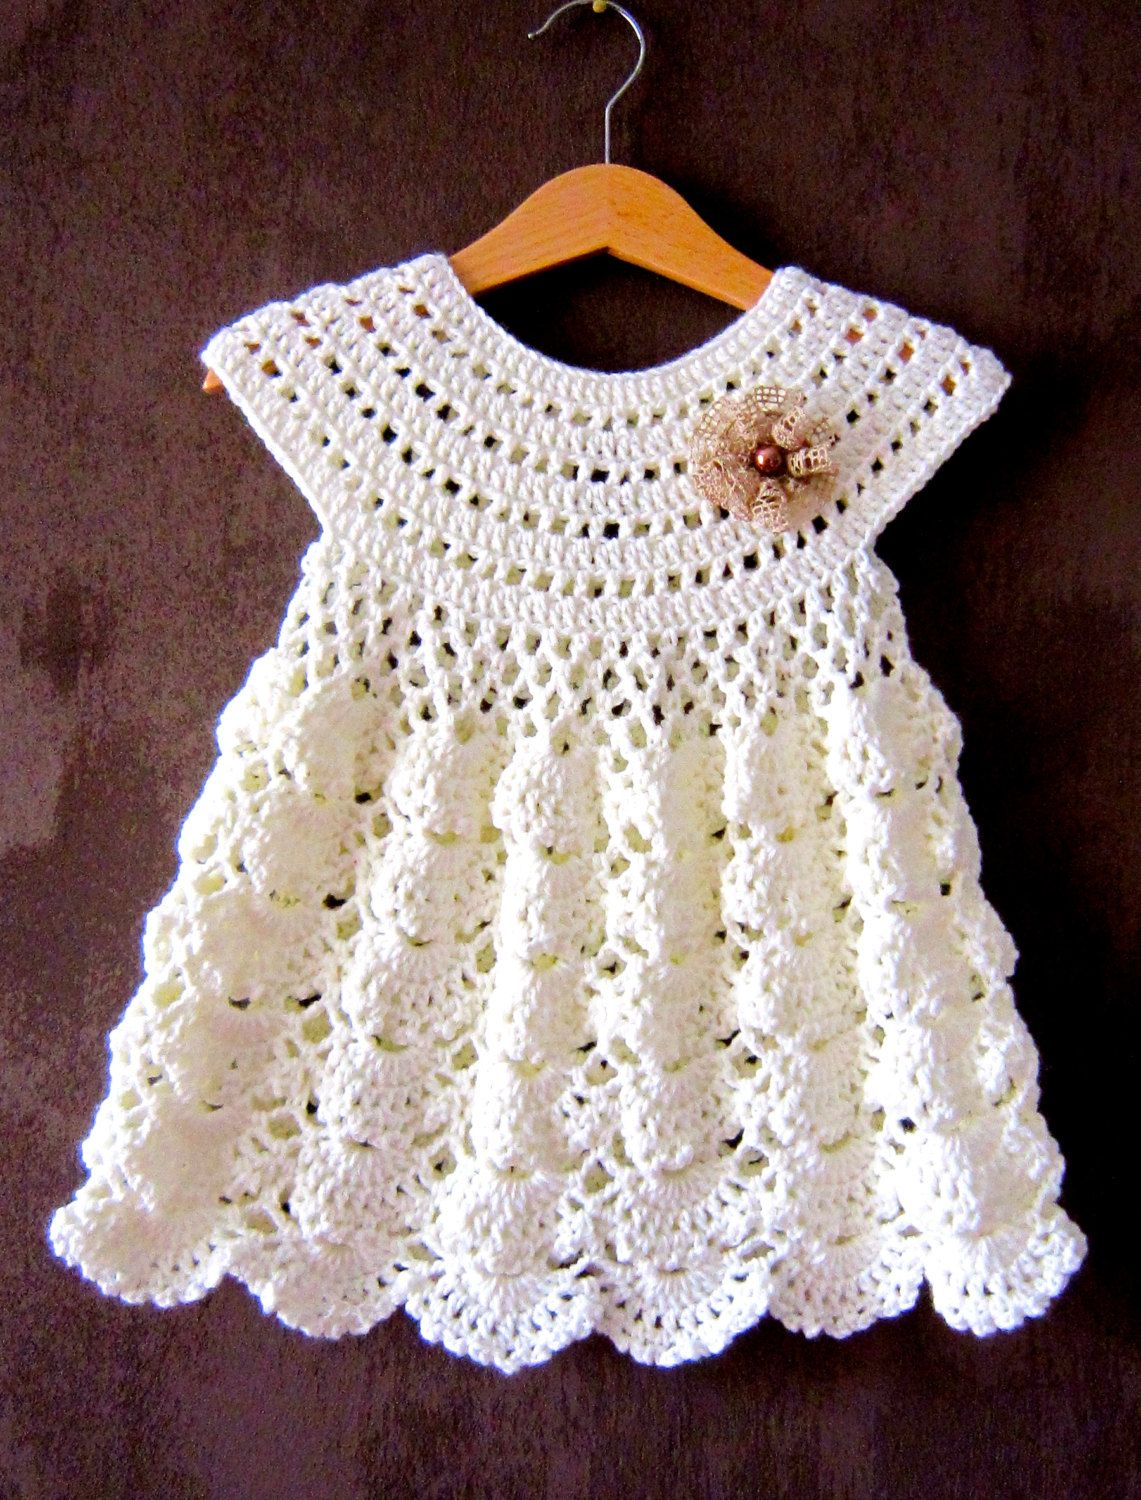 Beautiful crochet dresses for kids trendy - Baby Dress Crochet Flower Girl Outfit Crochet Dress For Girls Baby Crochet Hat Baptism Dress Christening Outfit Champagne Dress